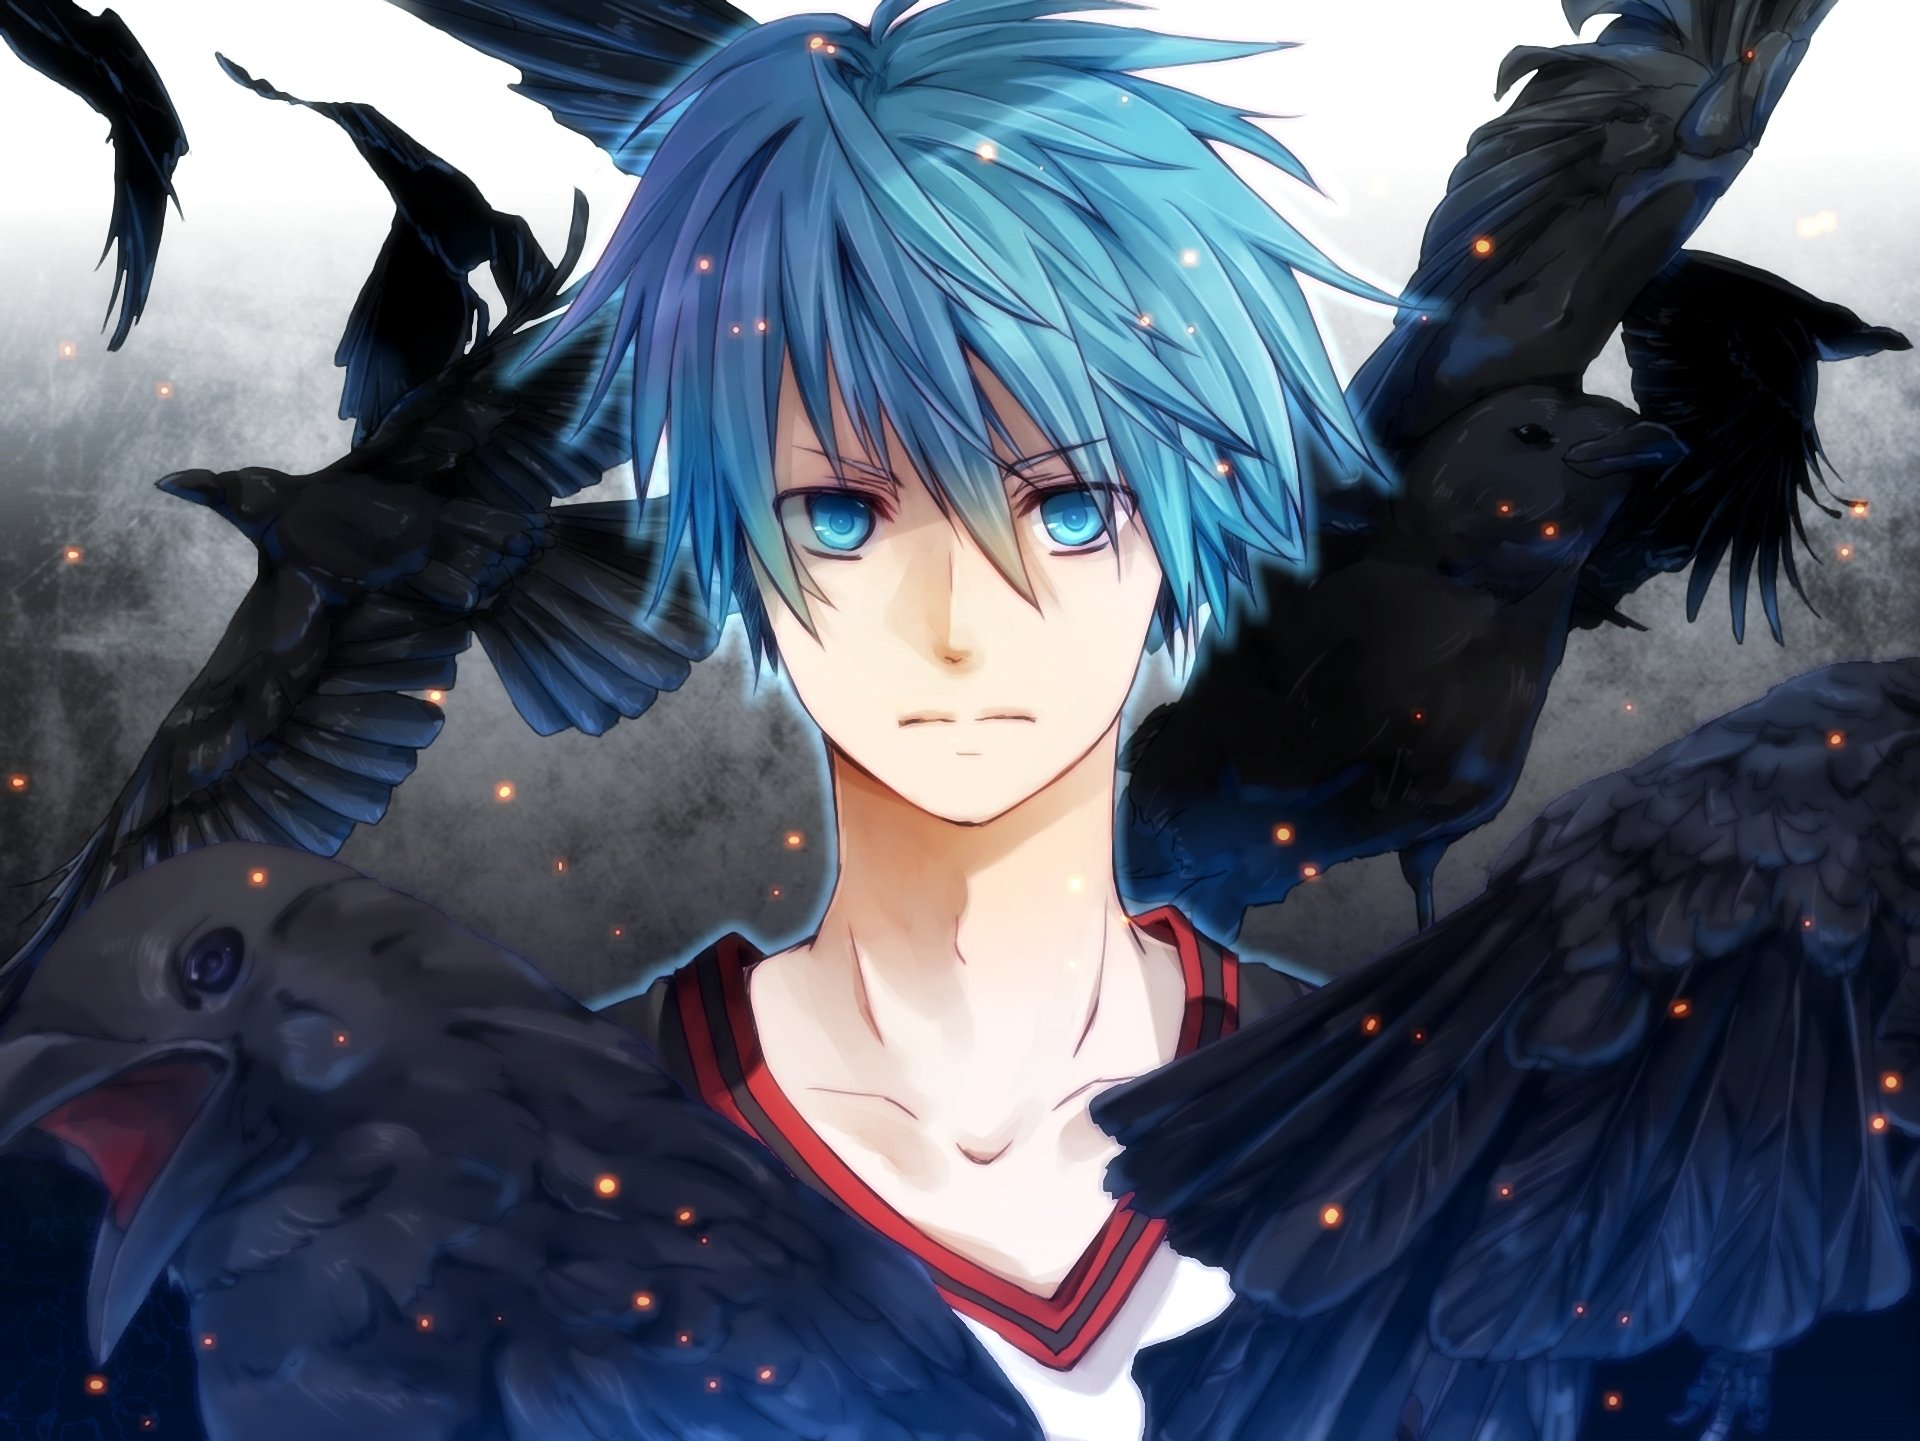 An Anime Character With Blue Hair : Anime the guy blue eyes hair ravens wallpaper